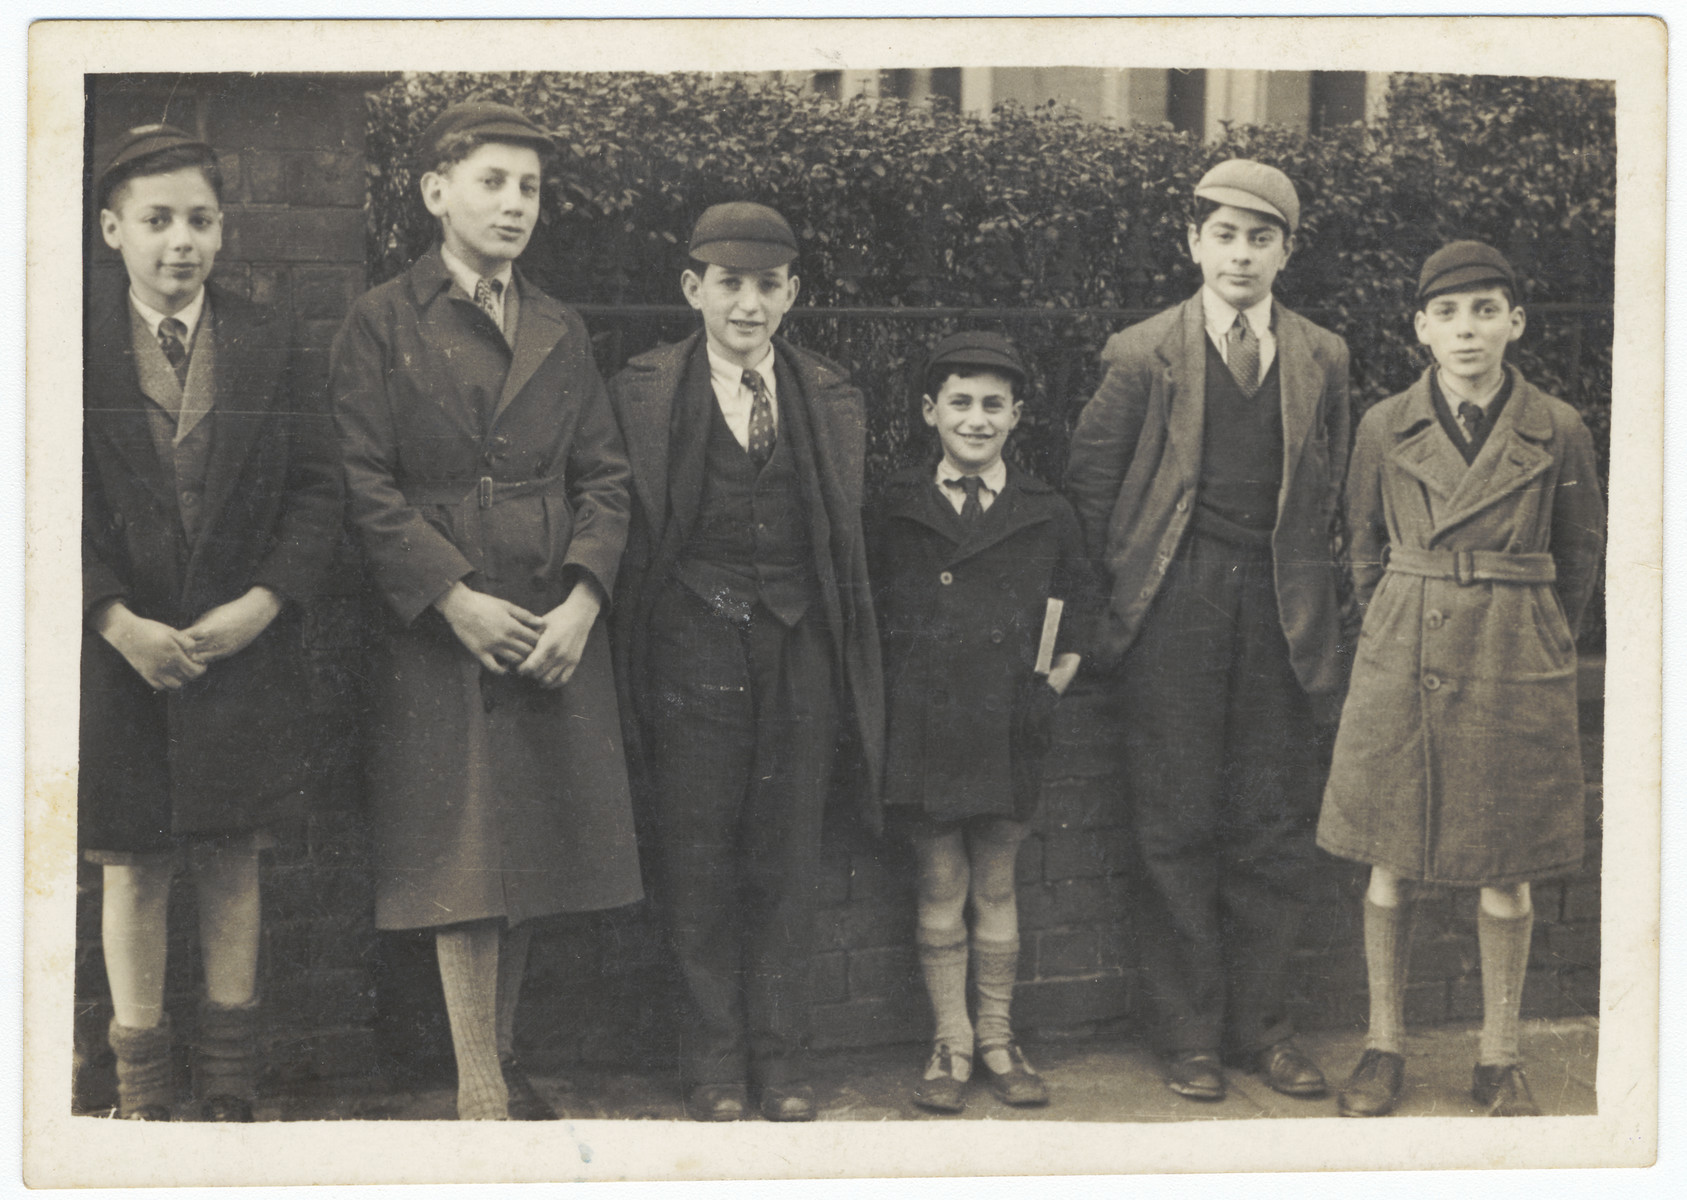 Six Jewish boys who came to England on a Kindertransport pose outside the synagogue in Nottingham.  From left to right are Martin Eiseman, Joseph Haberer, Lutz Goldner, Benjamin Bamberger, Henry Duckstein and Werner Cohn.